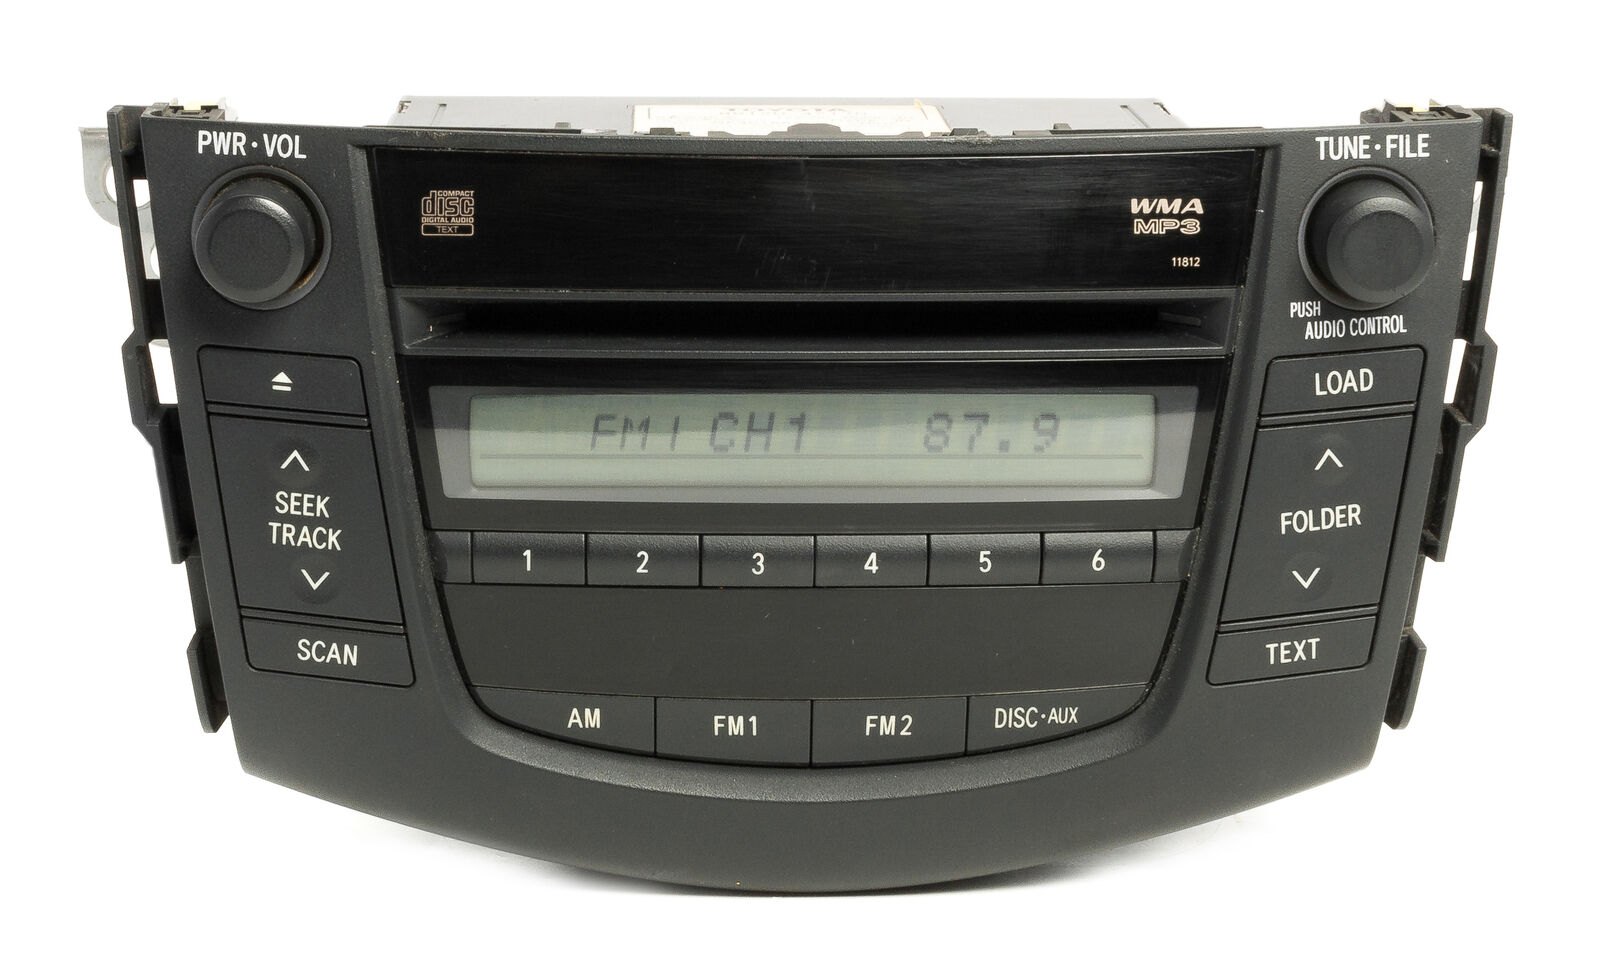 Toyota Rav4 2006 2014 Cd Head Unit Pinout Diagram Pinoutguide Com